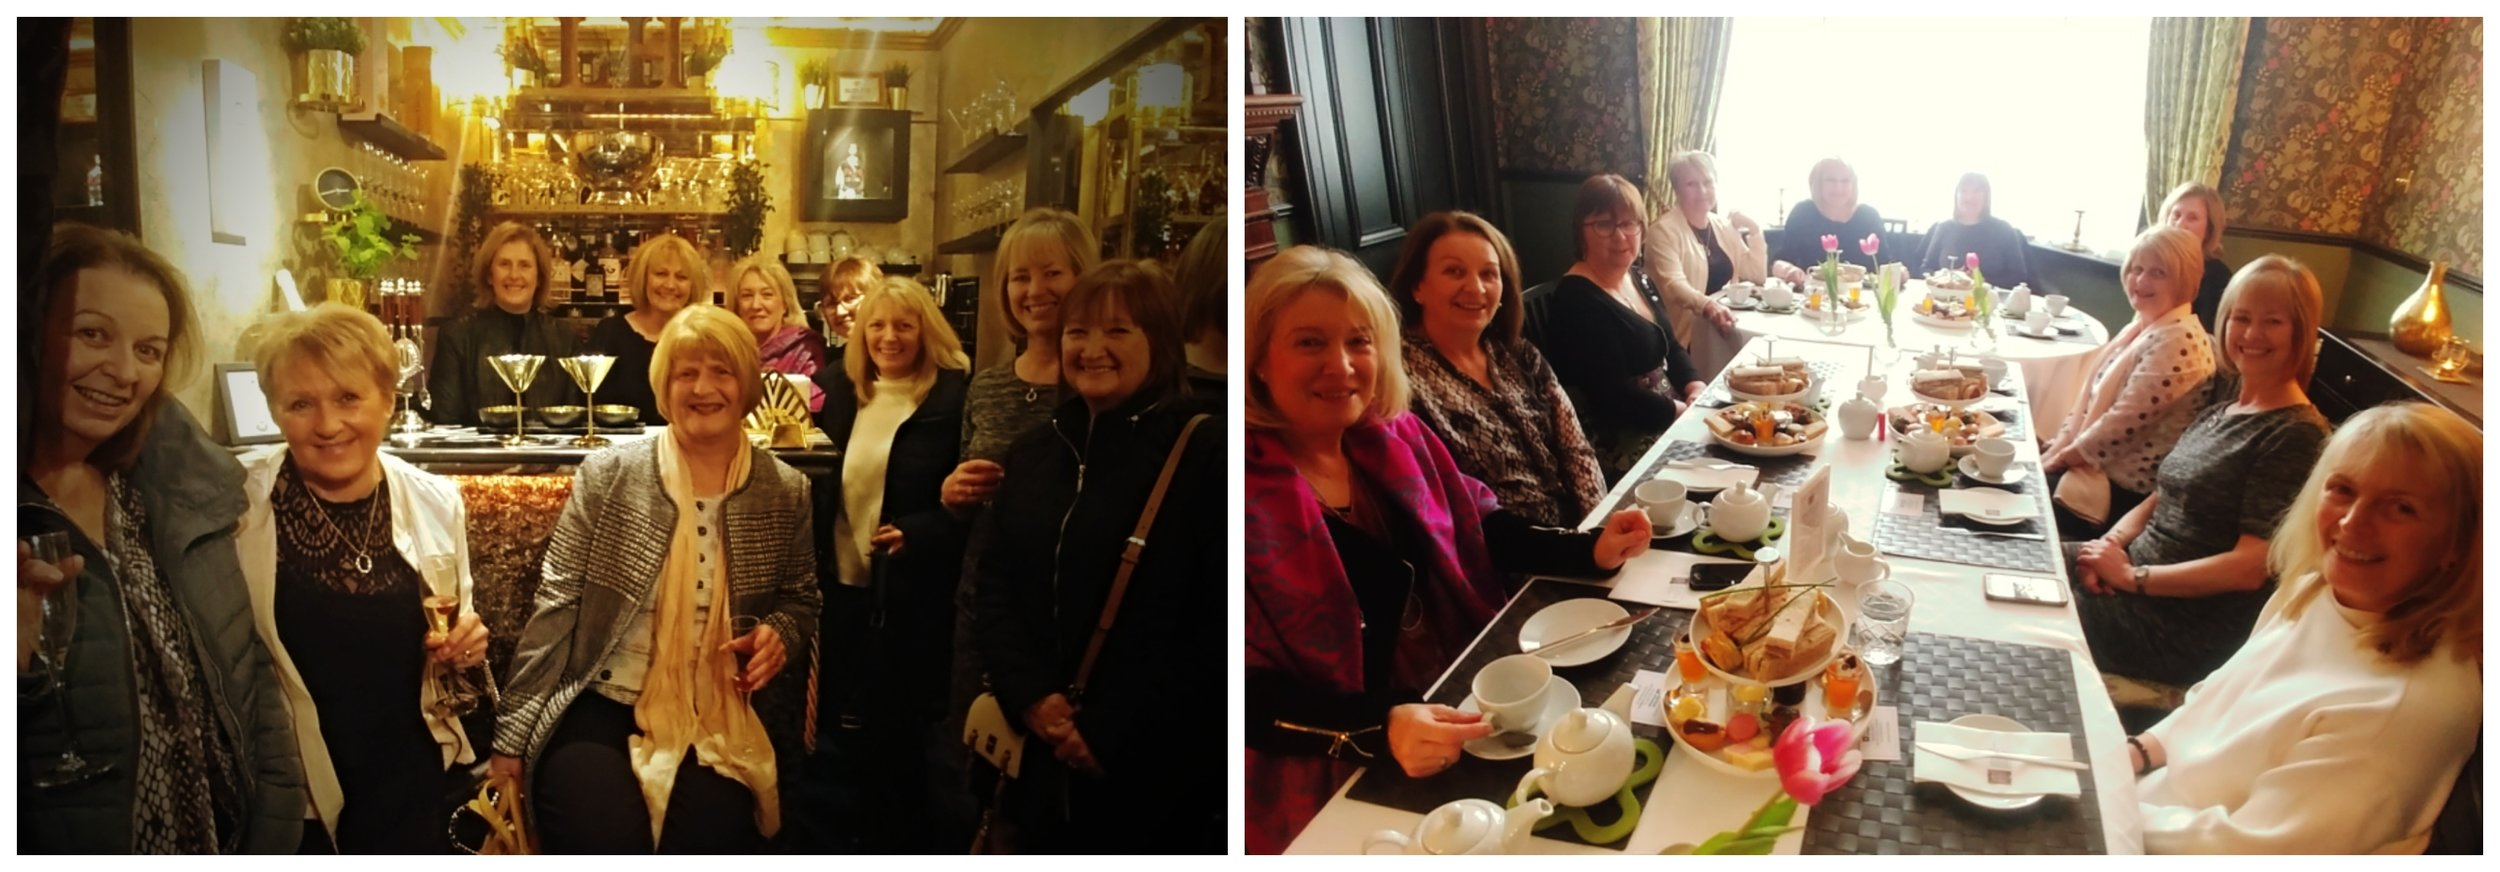 Former RBS Newmilns Branch Staff visit the Strongroom Bar and Enjoy Afternoon Tea at Lamlash House